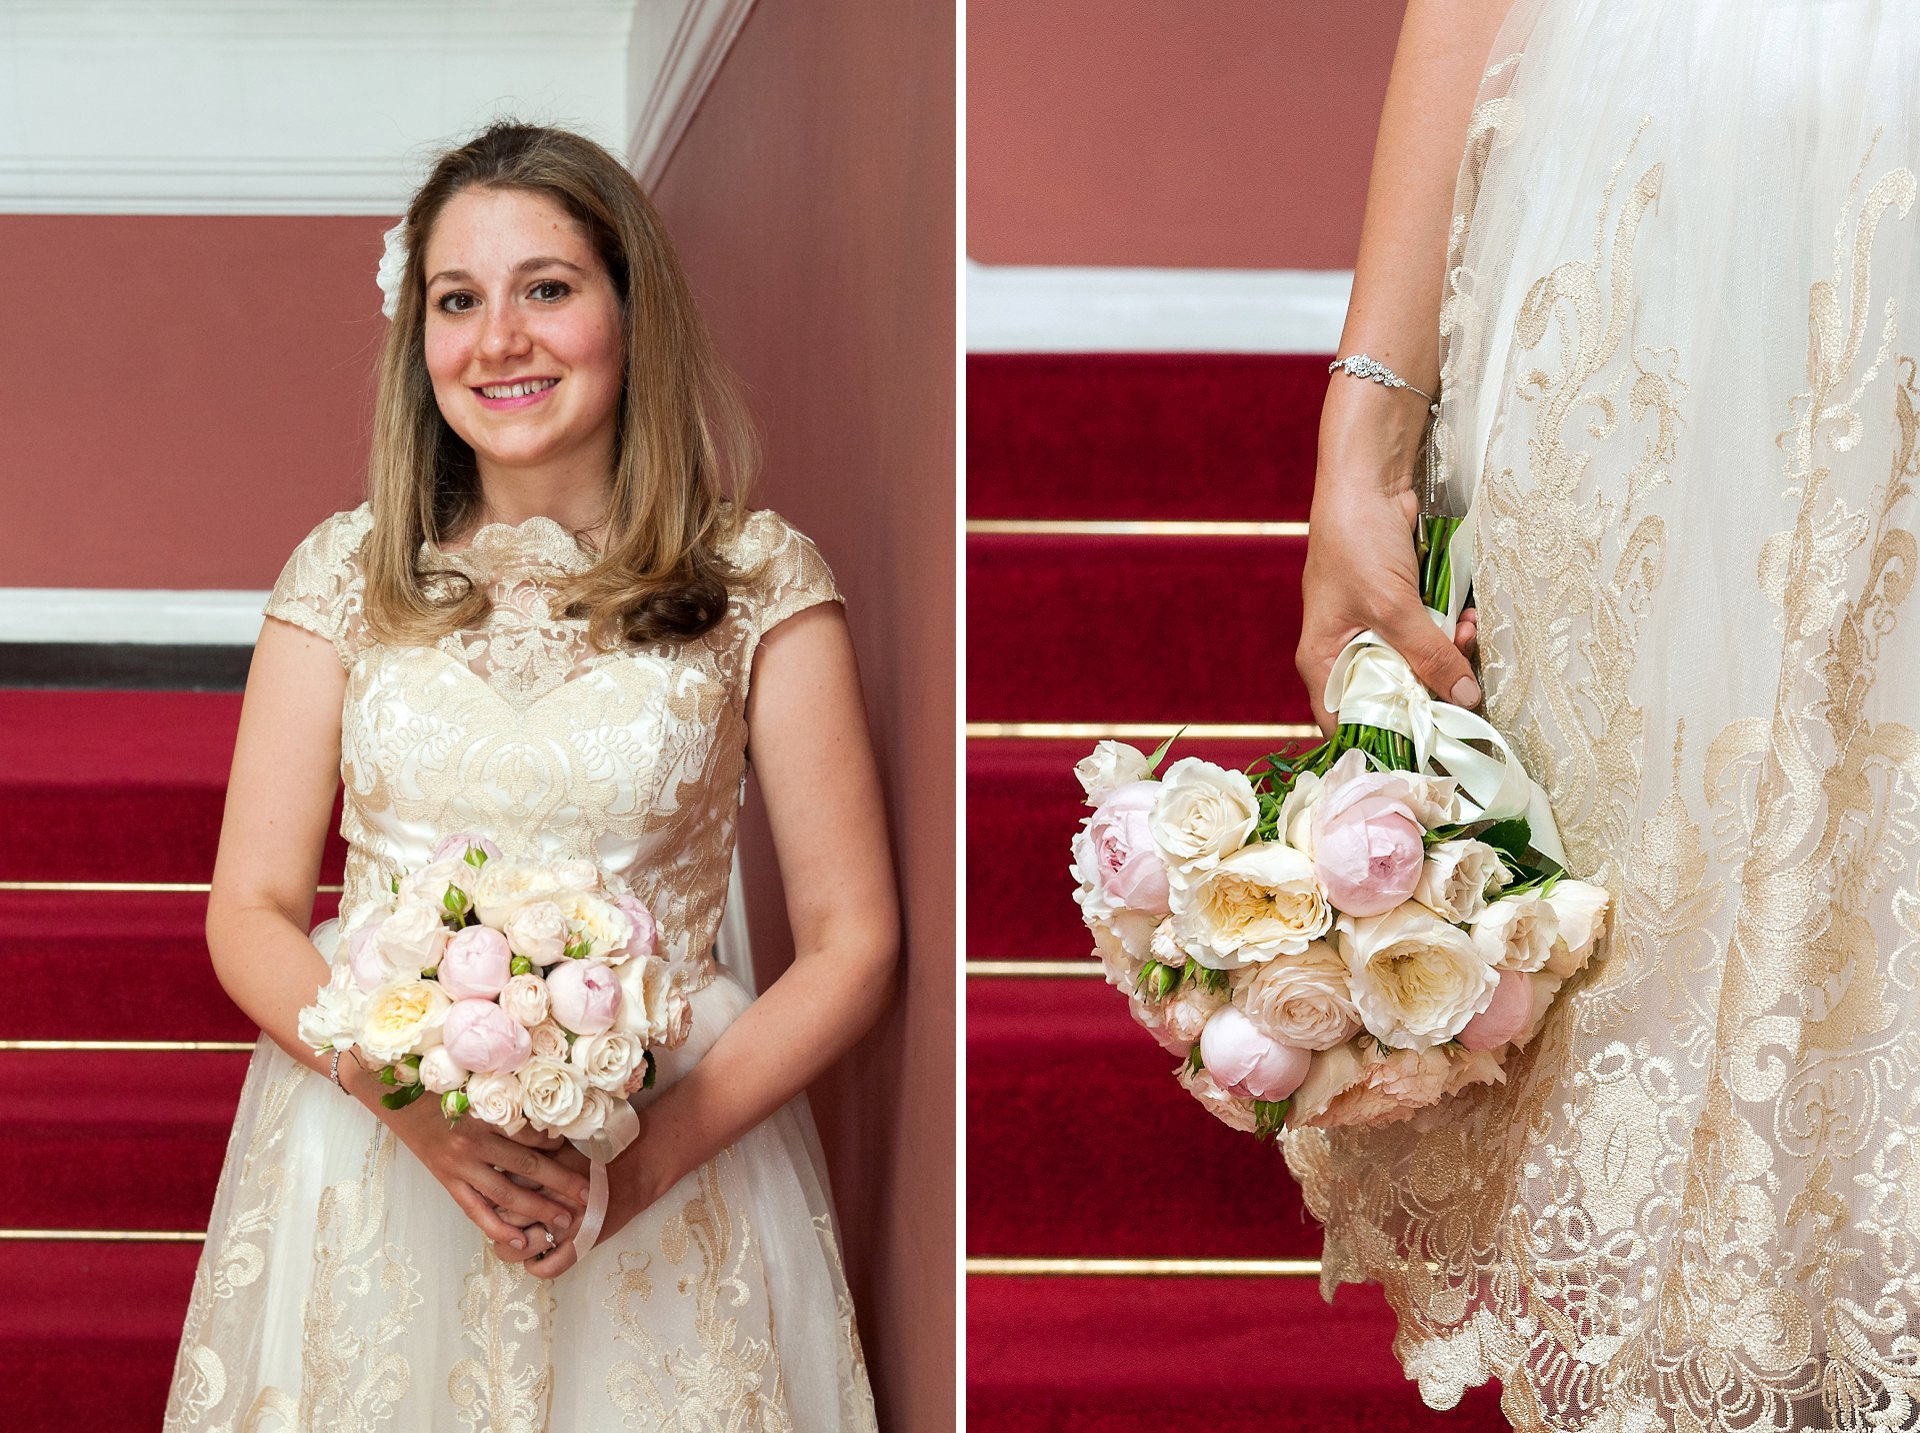 The bride on the red staircase inside Chelsea Old Town Hall in a mid-length ivory sweatheart neck tulle dress with gold lace overlay and small sleeves. She is holding a bouquet of pale pink peonies and cream roses